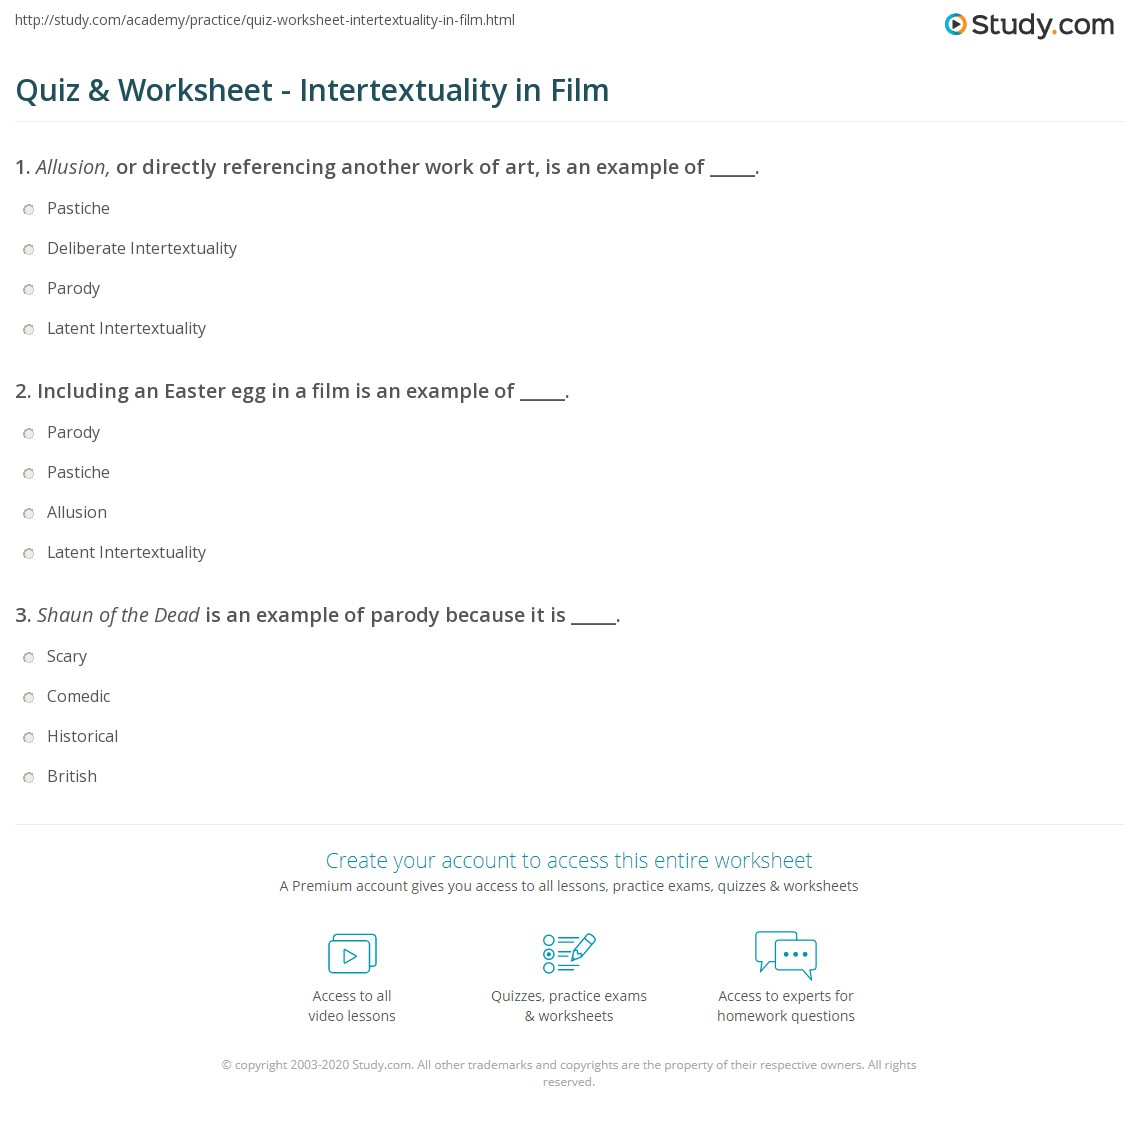 Quiz Worksheet Intertextuality In Film Study